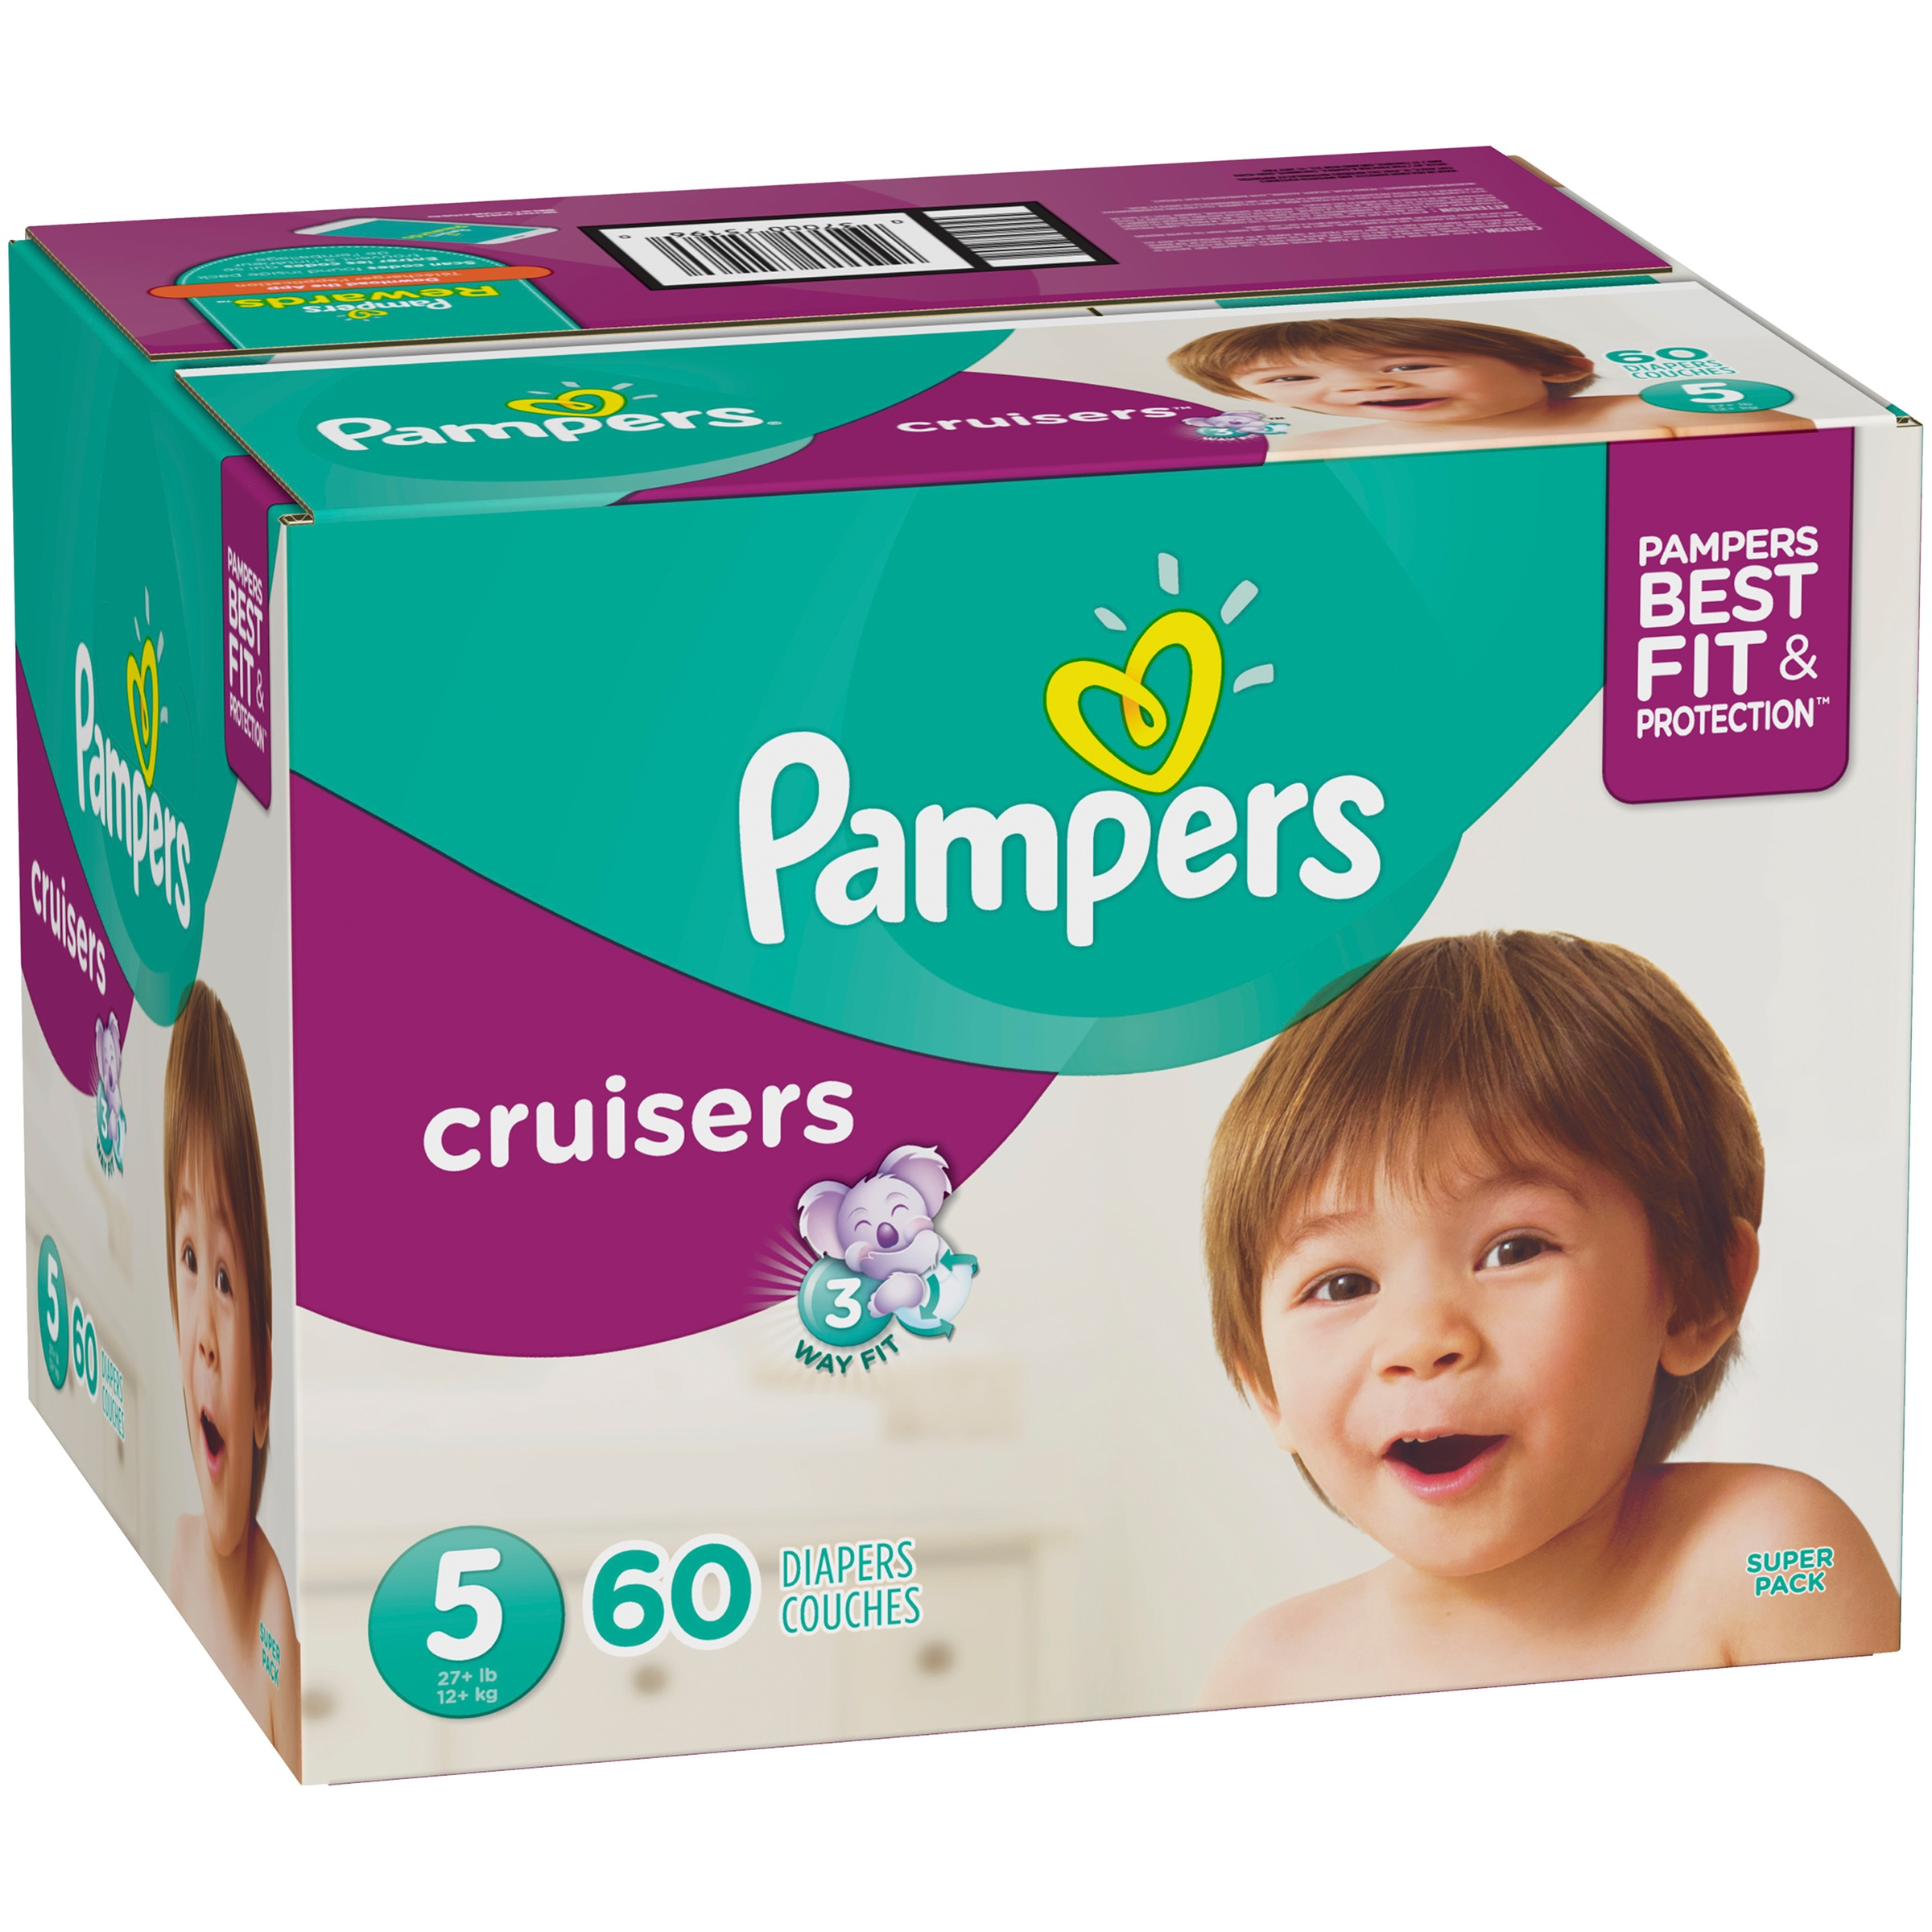 98d009b43c Pampers Cruisers Diapers Size 5, 60 Count - Walmart.com